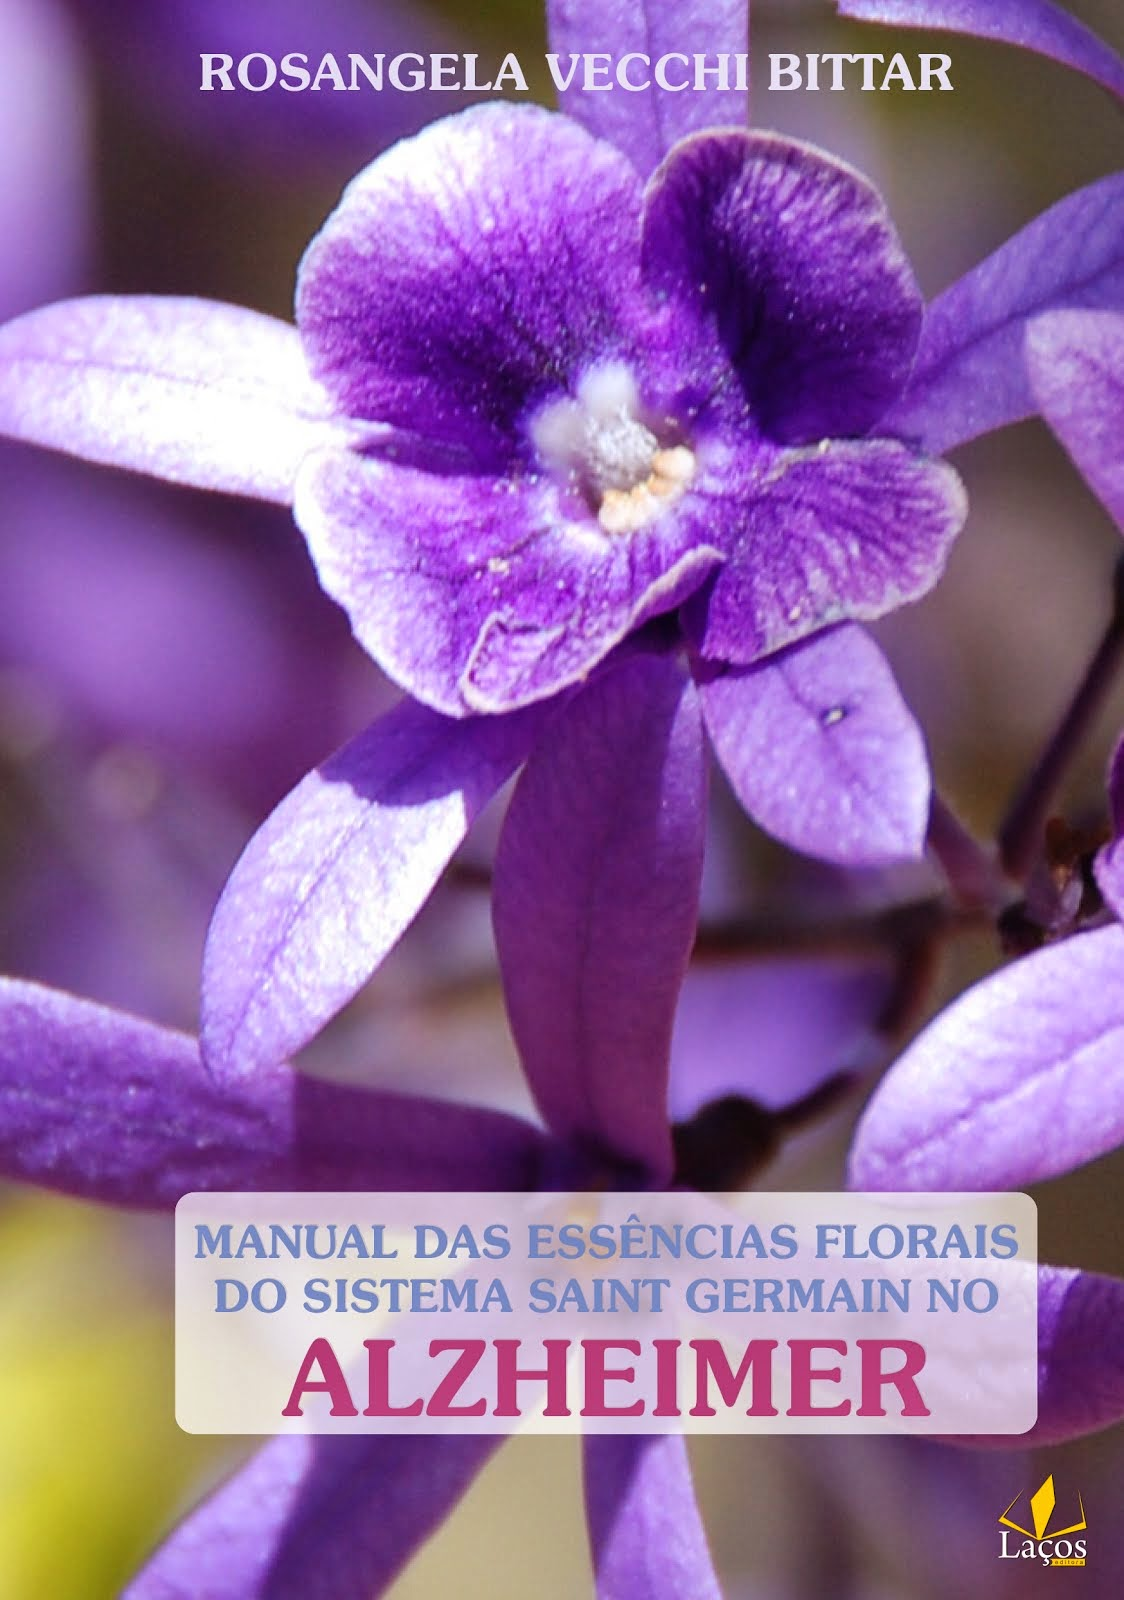 MANUAL DAS ESSÊNCIAS FLORAIS   DO SISTEMA SAINT GERMAIN NO ALZHEIMER